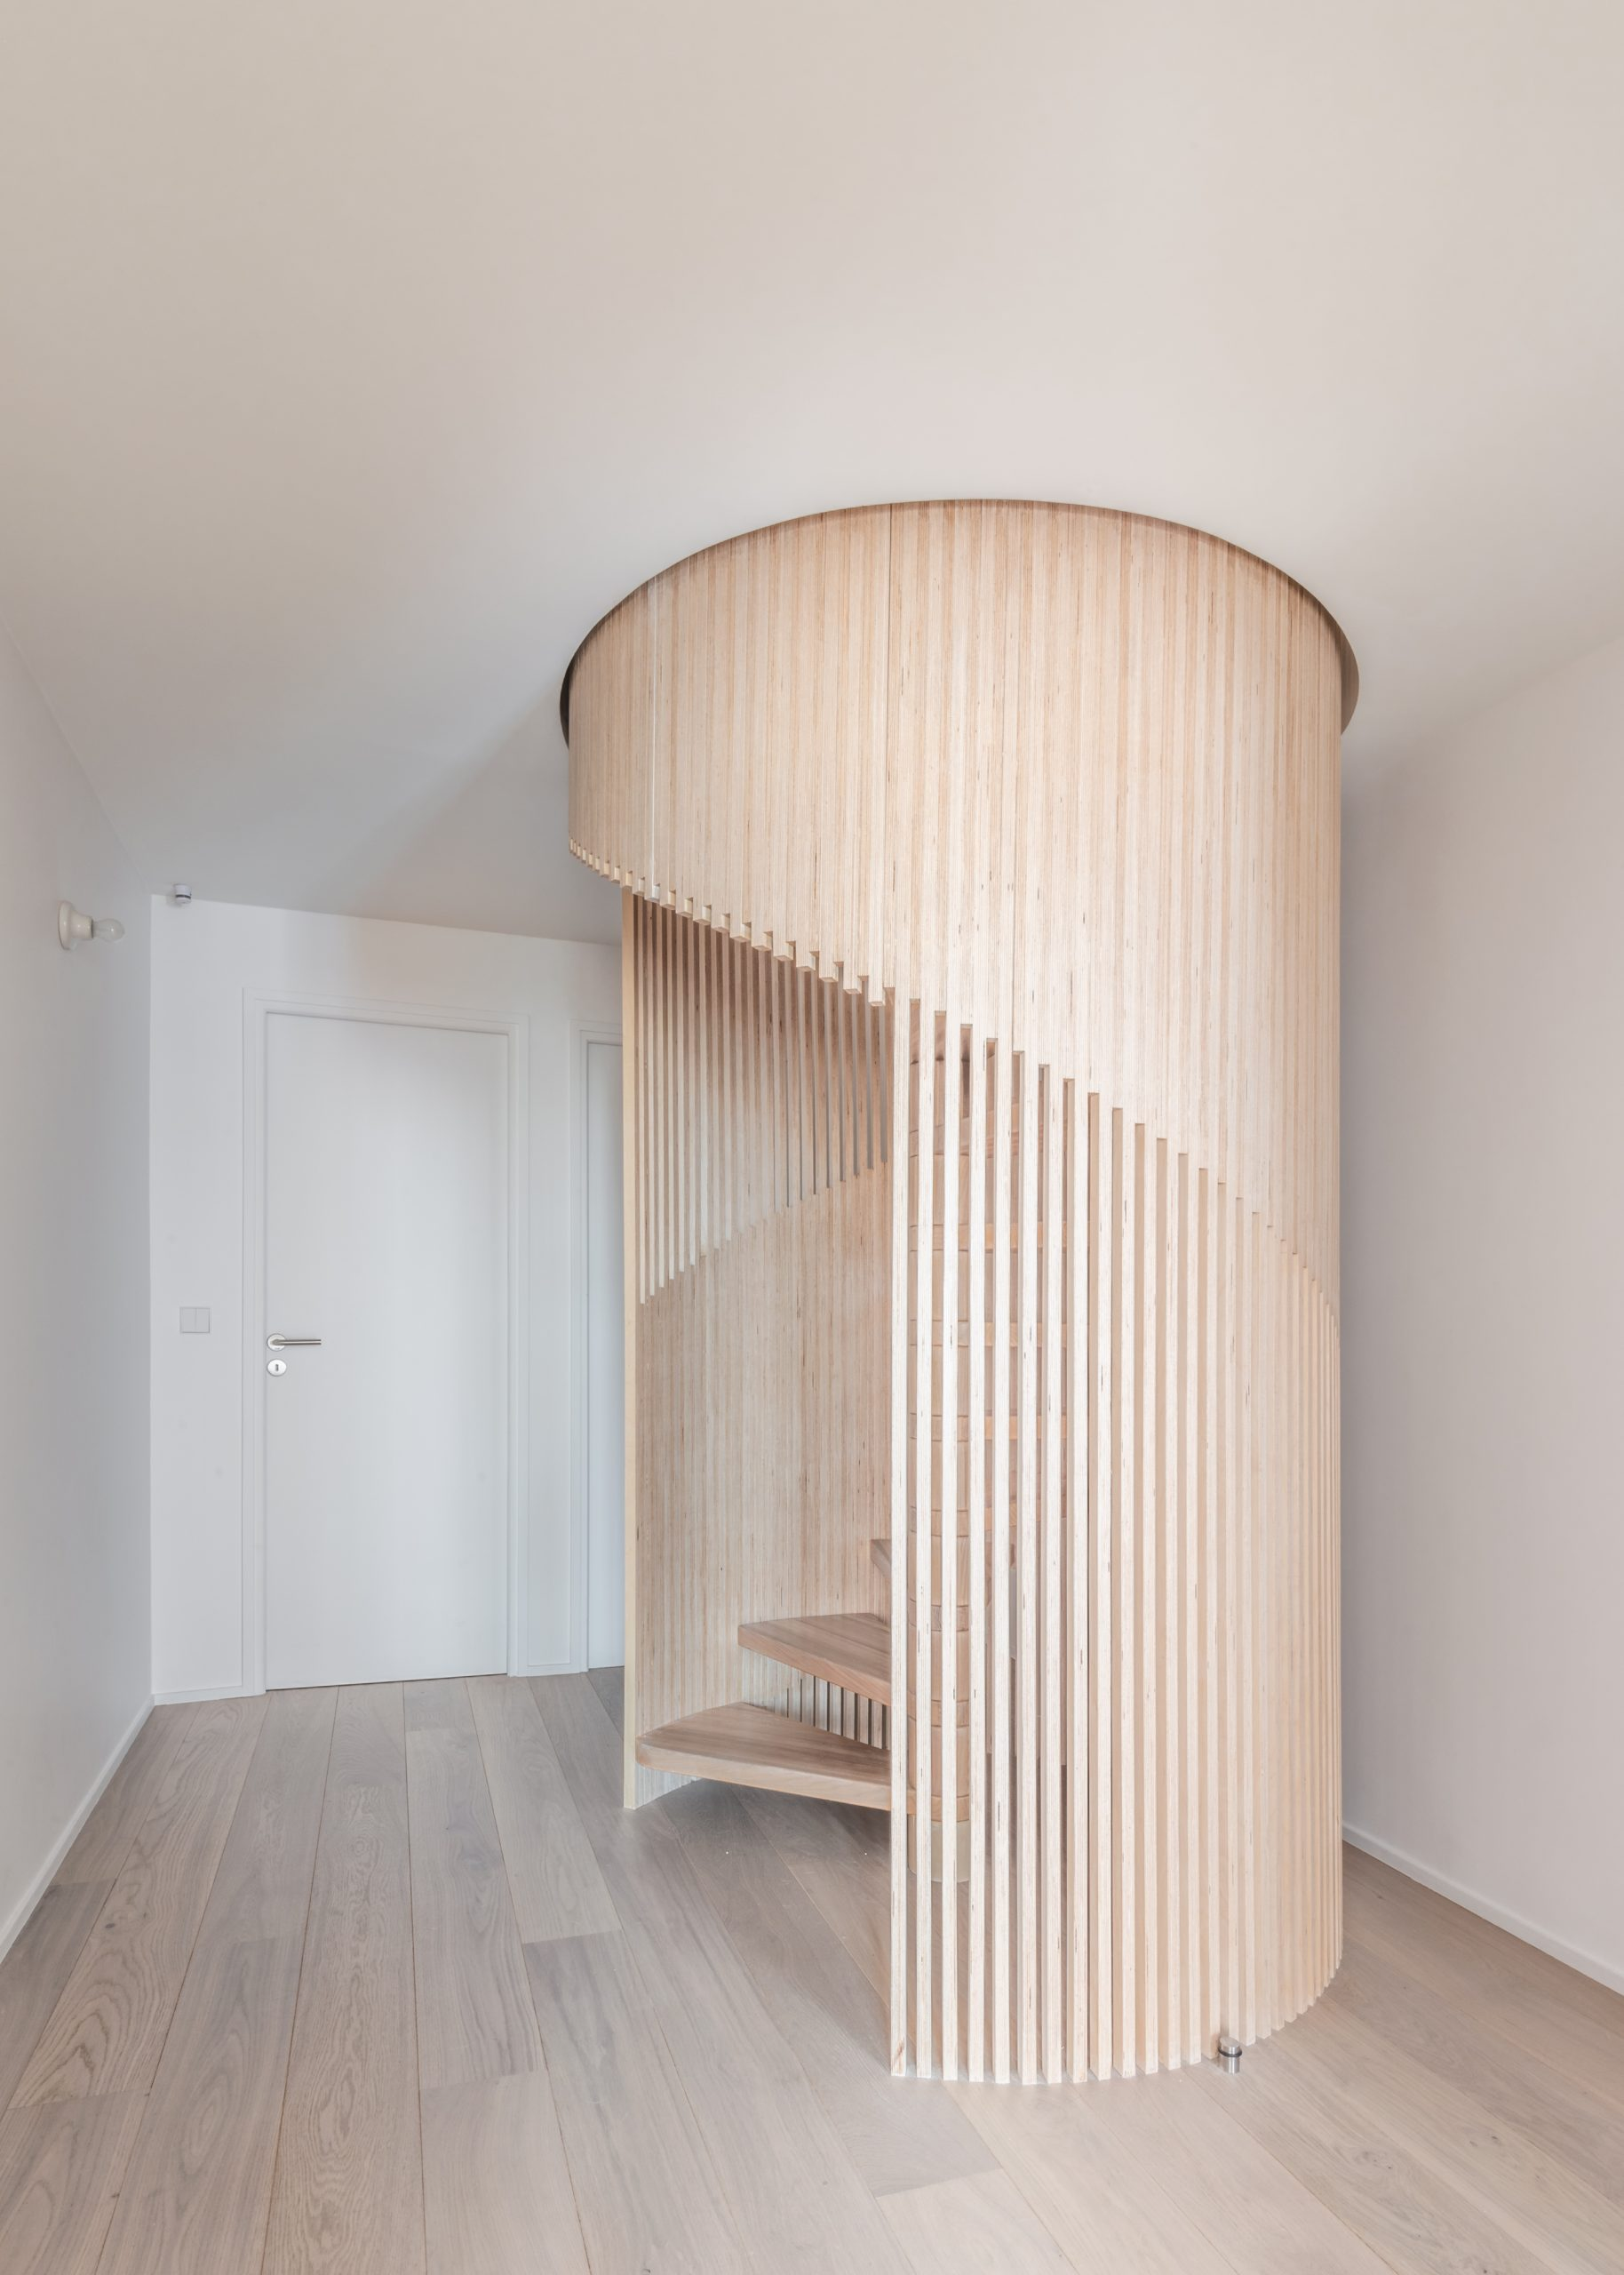 birch plywood architectural staircase railing